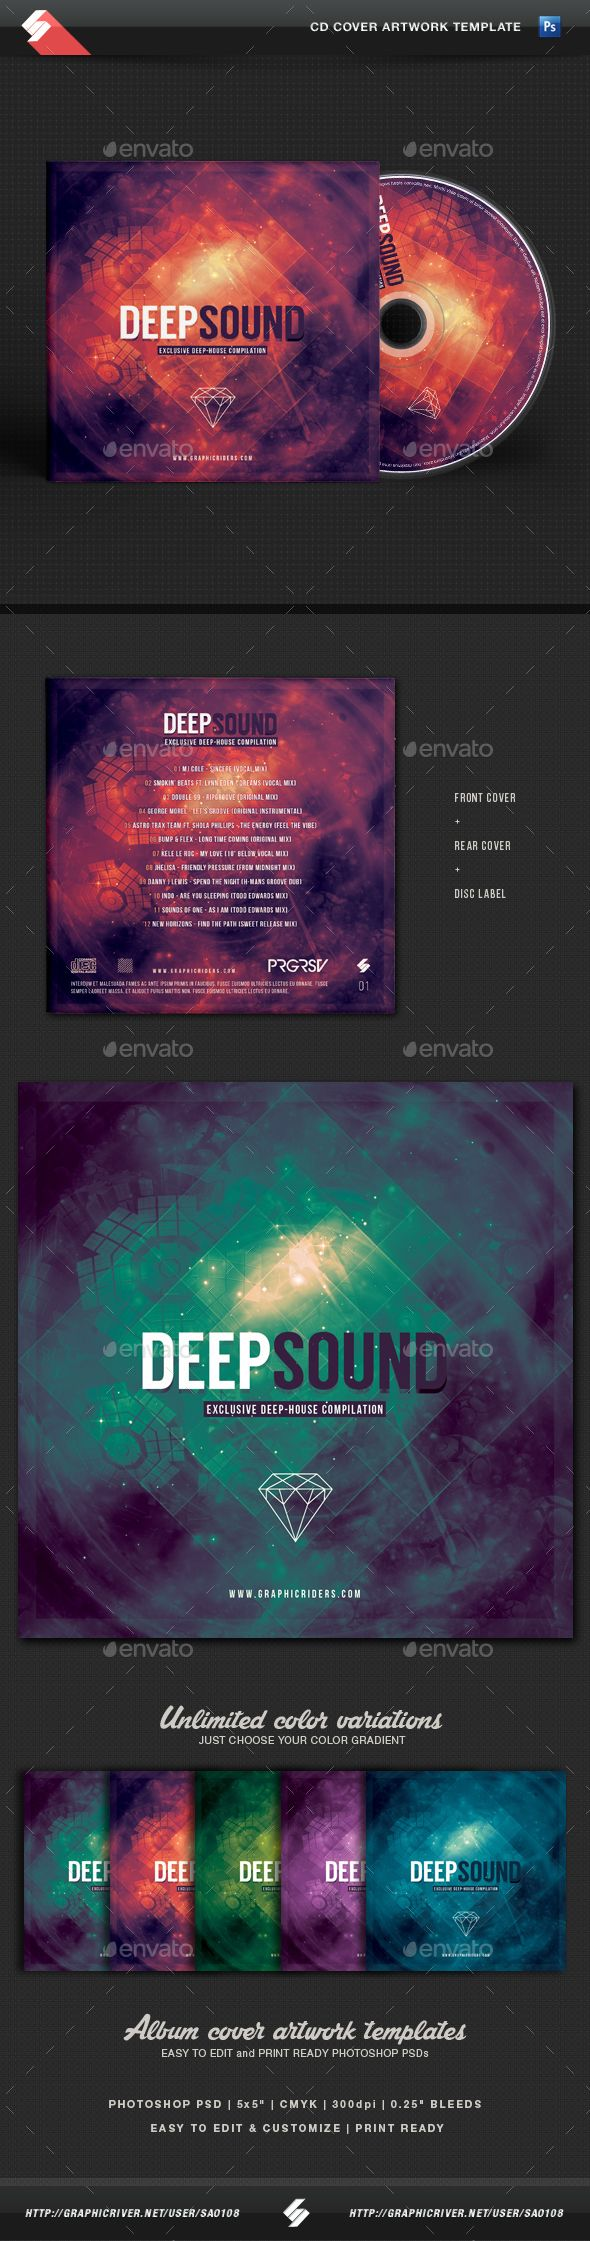 Deep Sound - CD Cover Artwork Template   Cd cover, Template and Psd ...